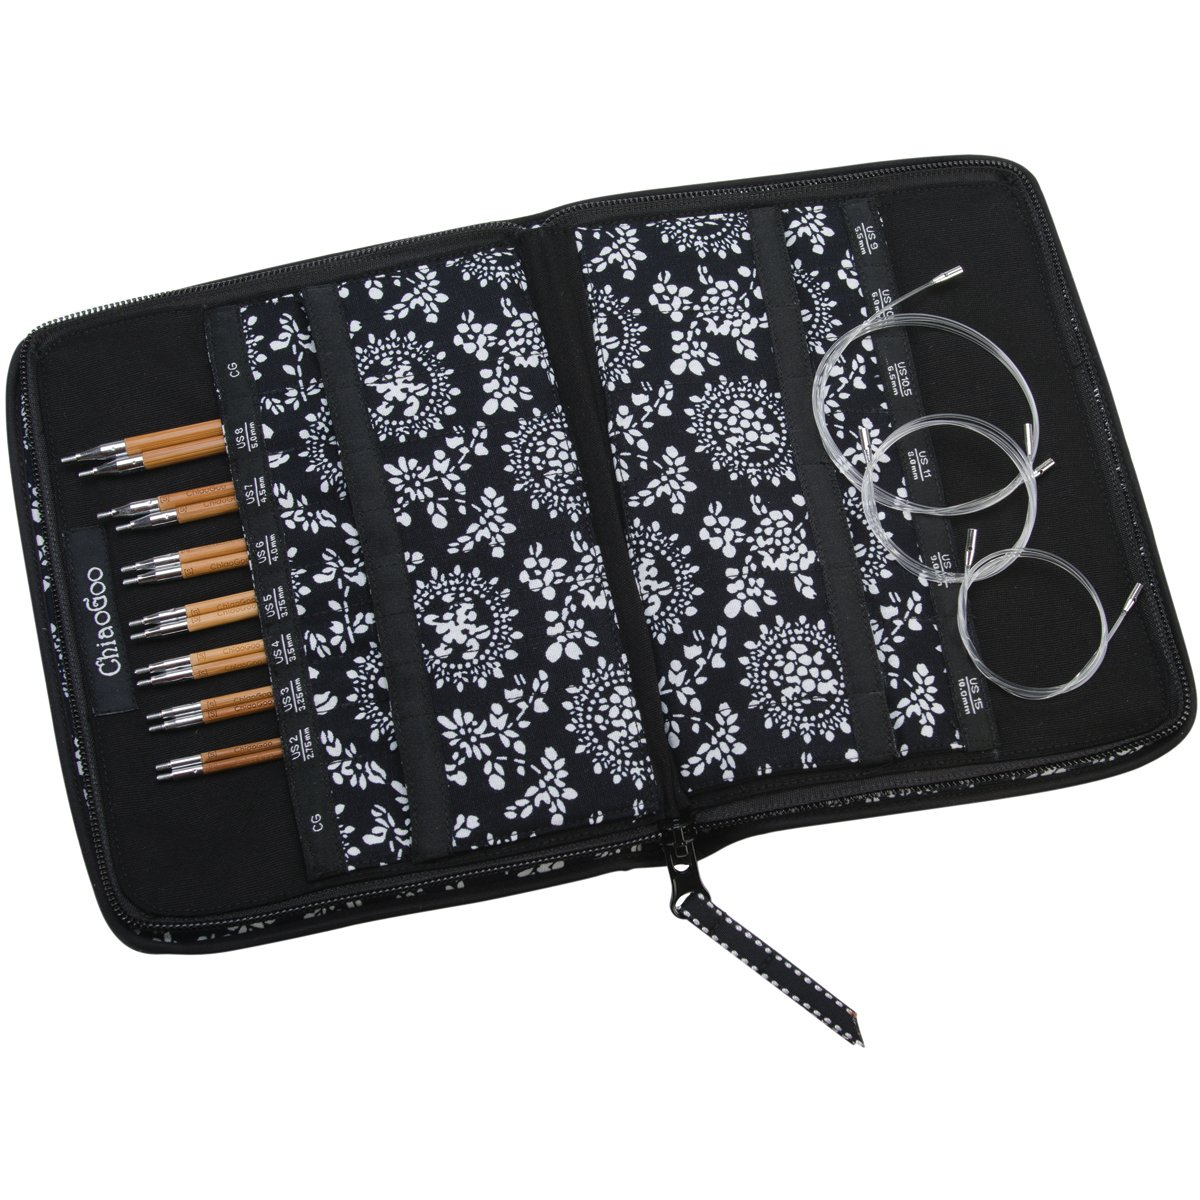 ChiaoGoo Spin Interchangeable Knitting Needle Set, Small 2500-S